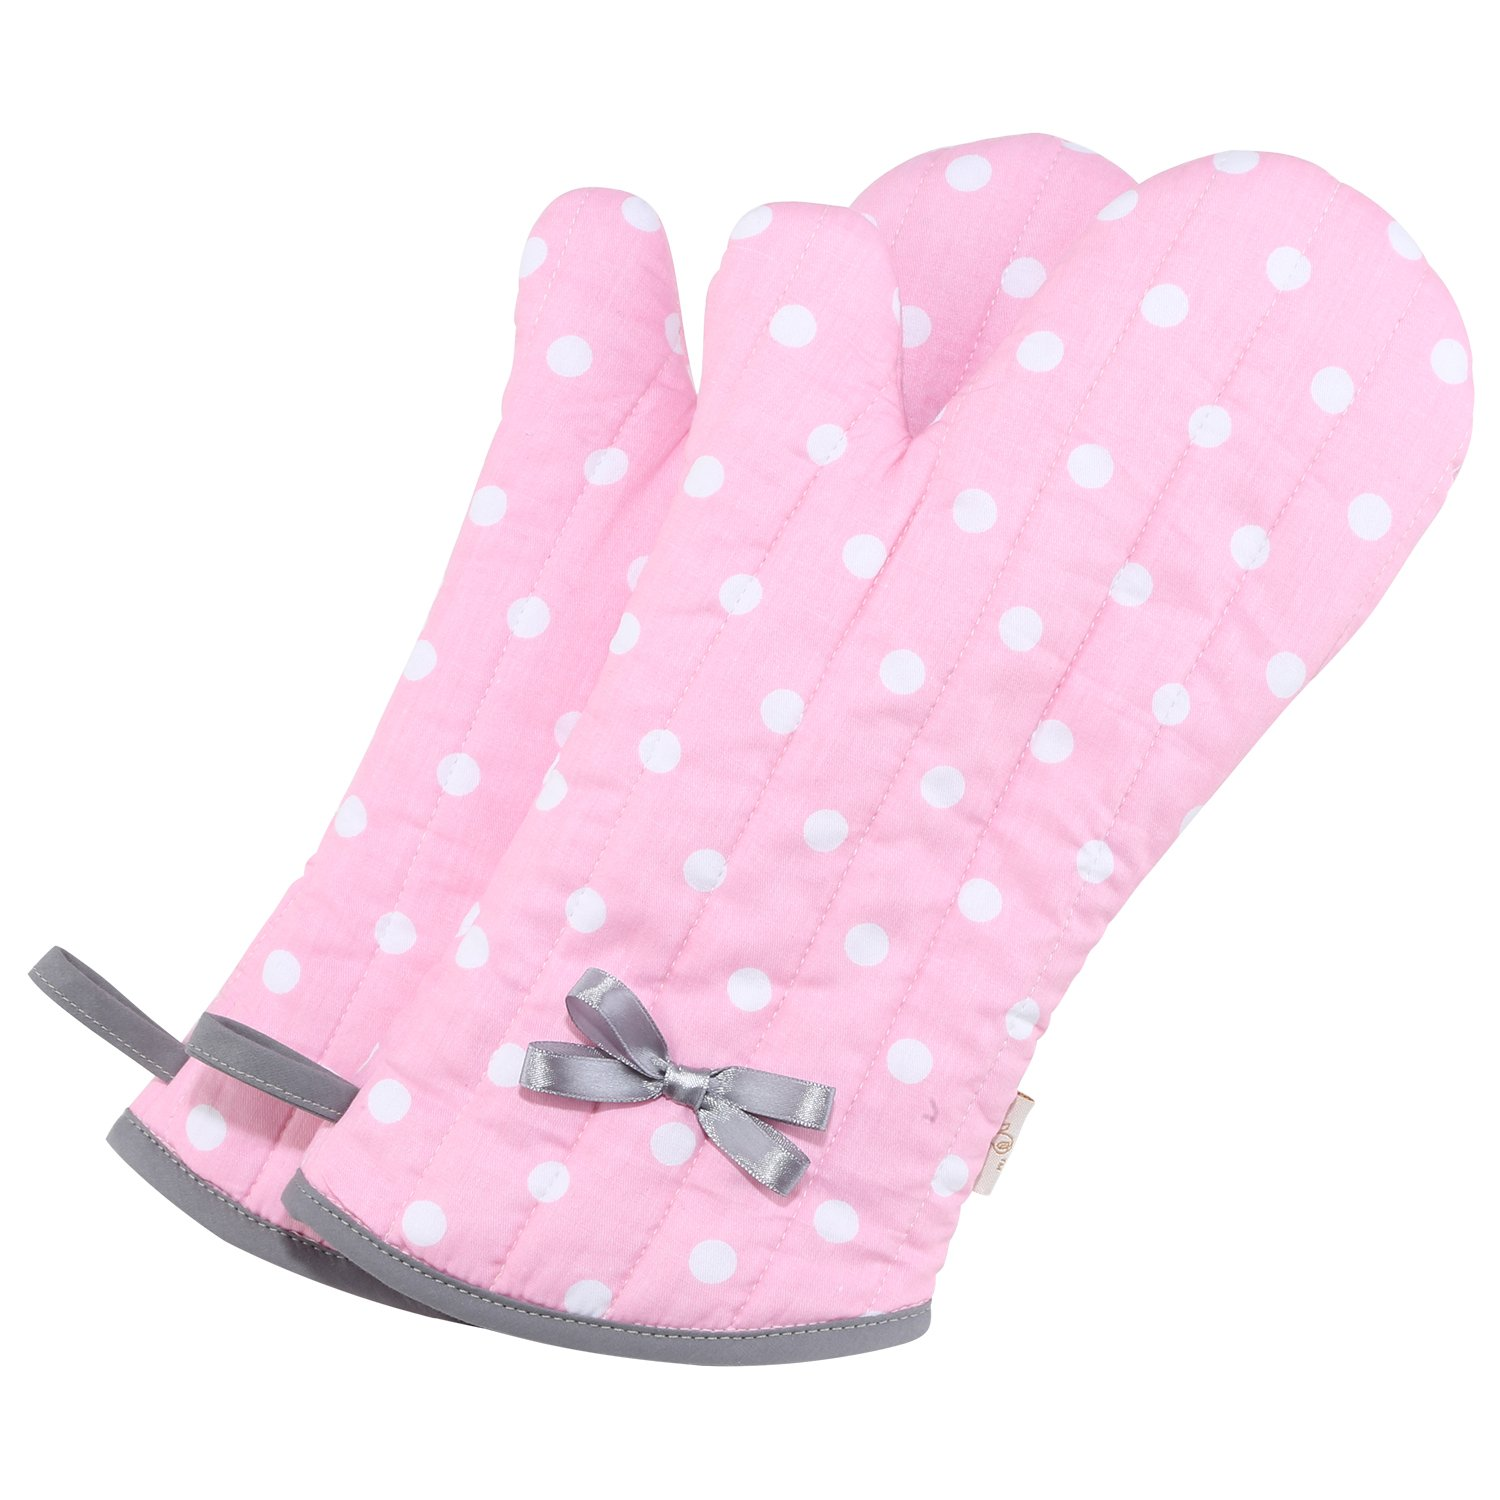 NEOVIVA Kitchen Oven Mitts for Adults, Heat Resistant Cotton Oven Gloves Set of 2, Polka Dots Pink